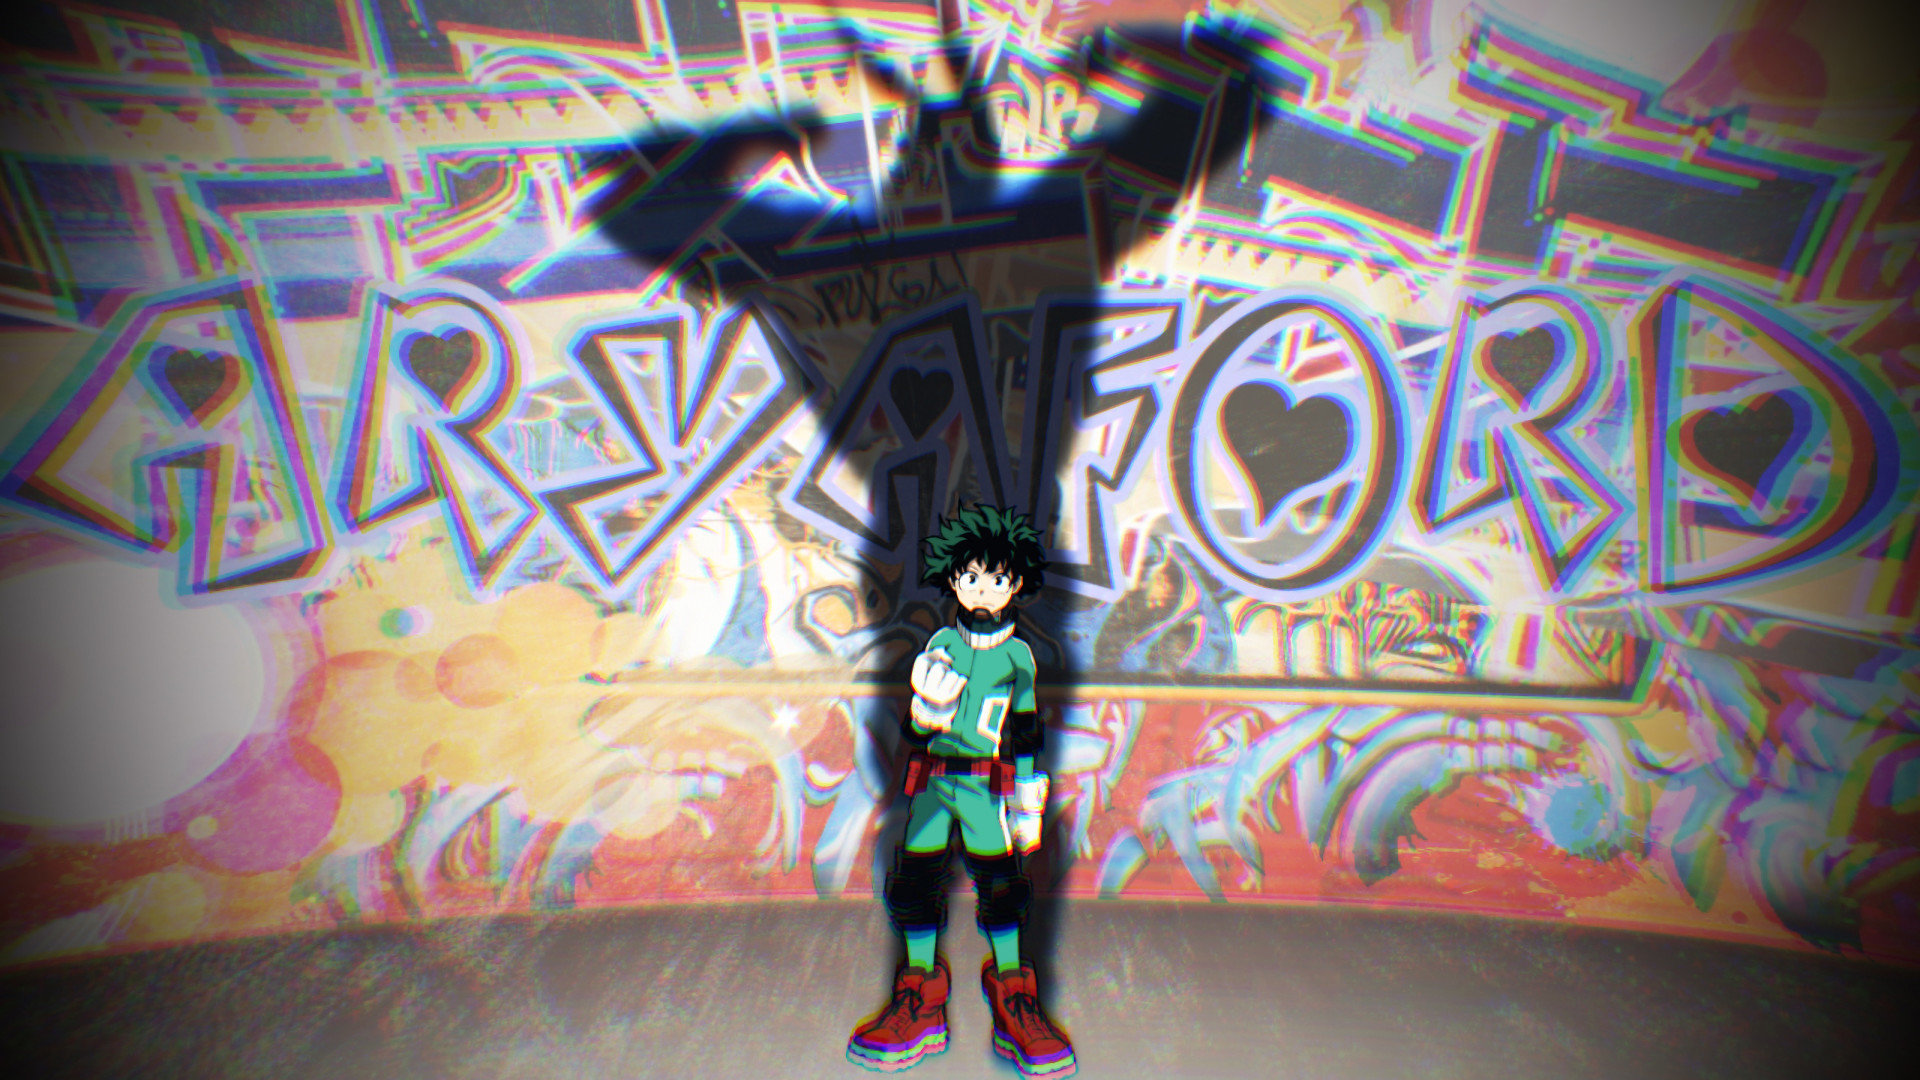 Download full hd 1920x1080 Boku No Hero Academia PC wallpaper ID:192376 for free